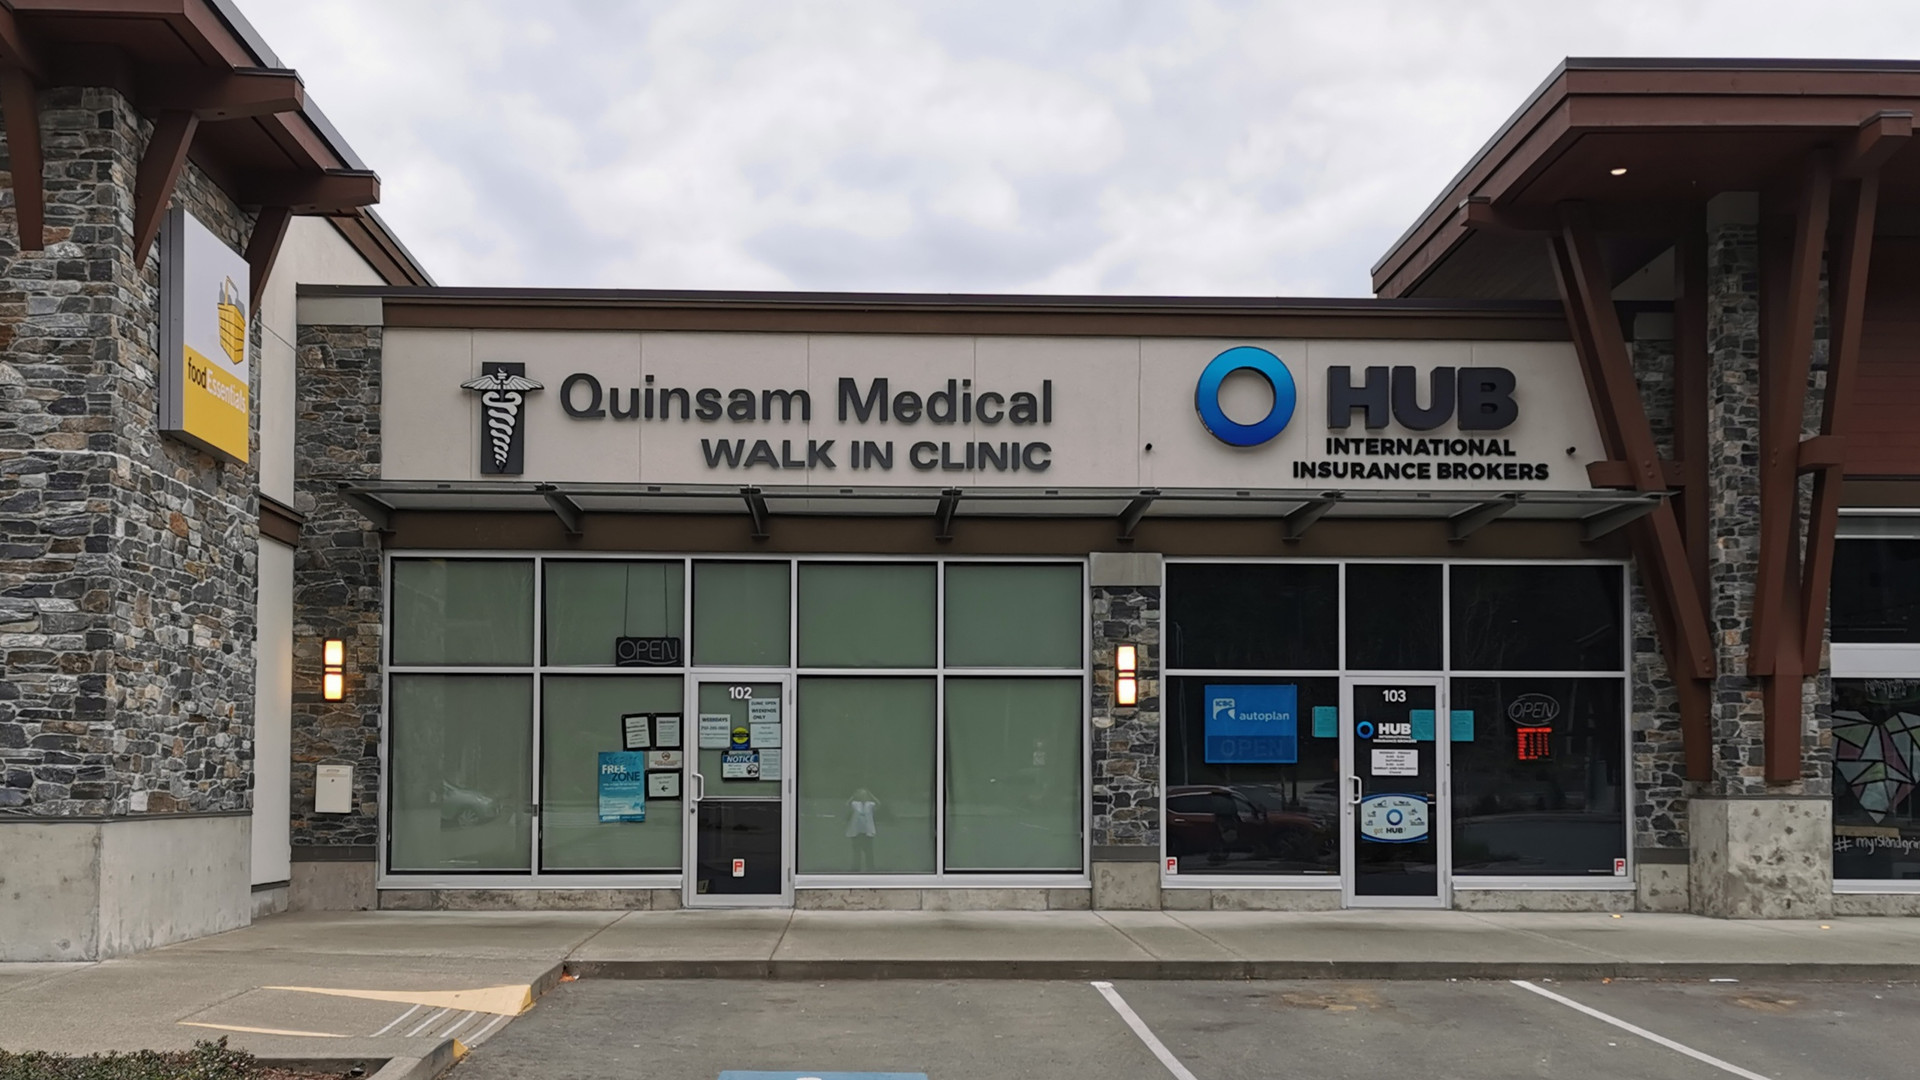 Quinsam Medical Group